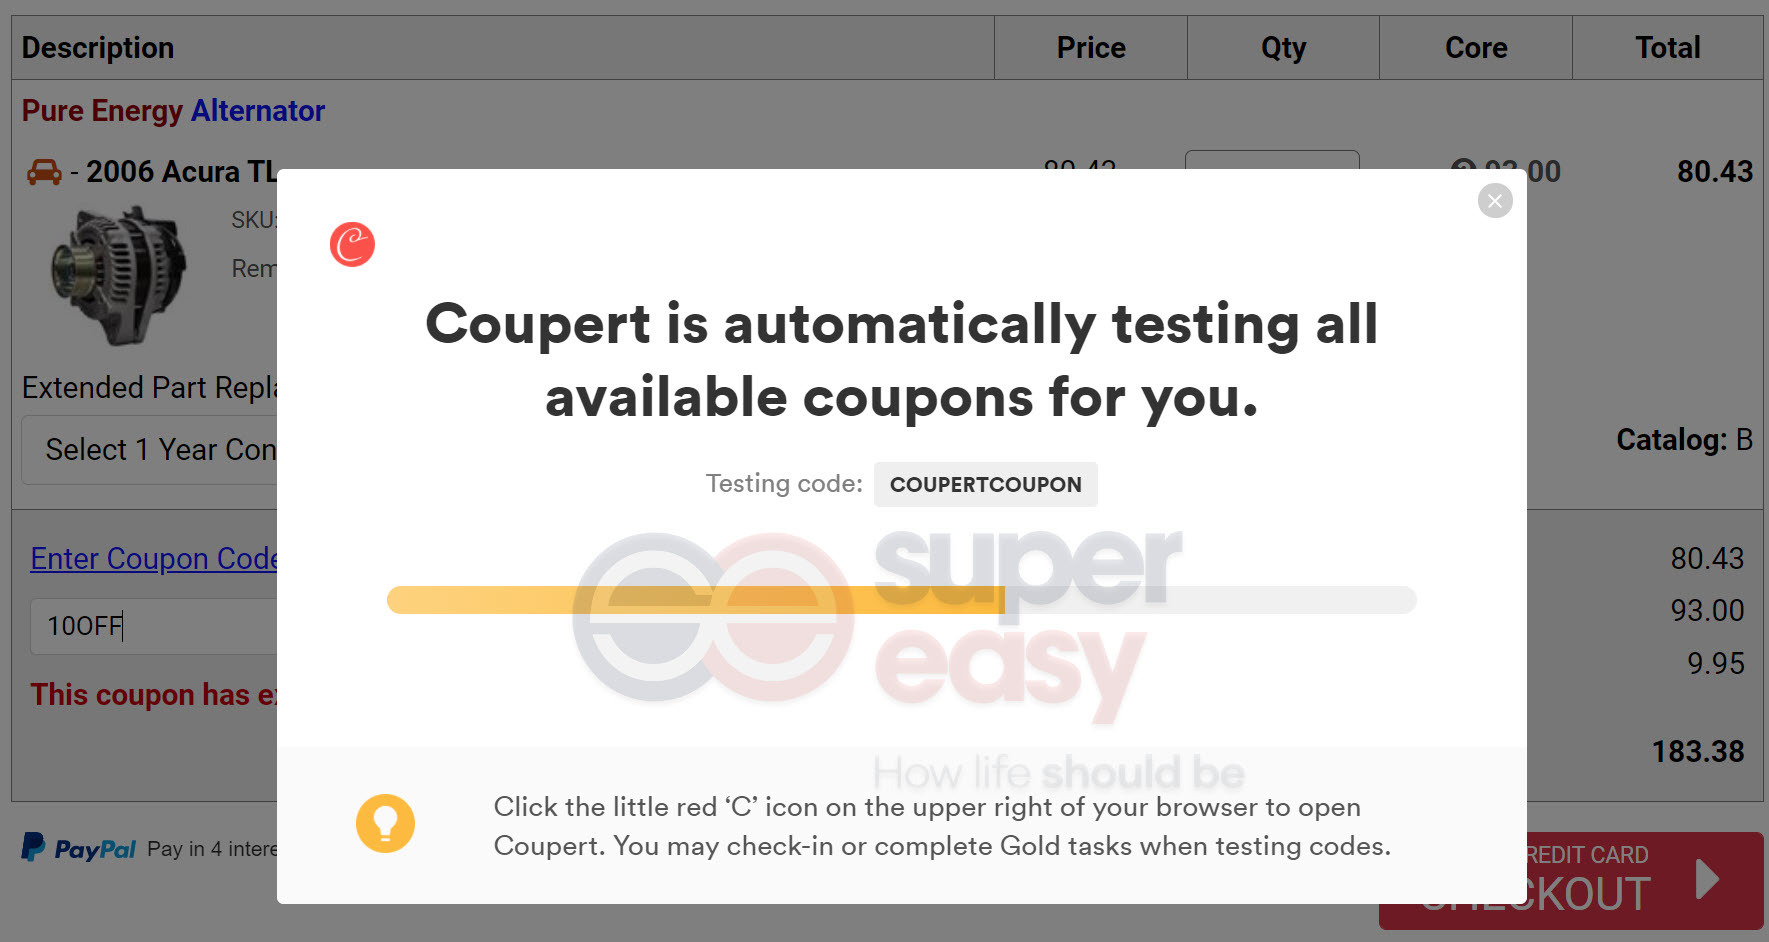 Parts Geek coupons coupert searching